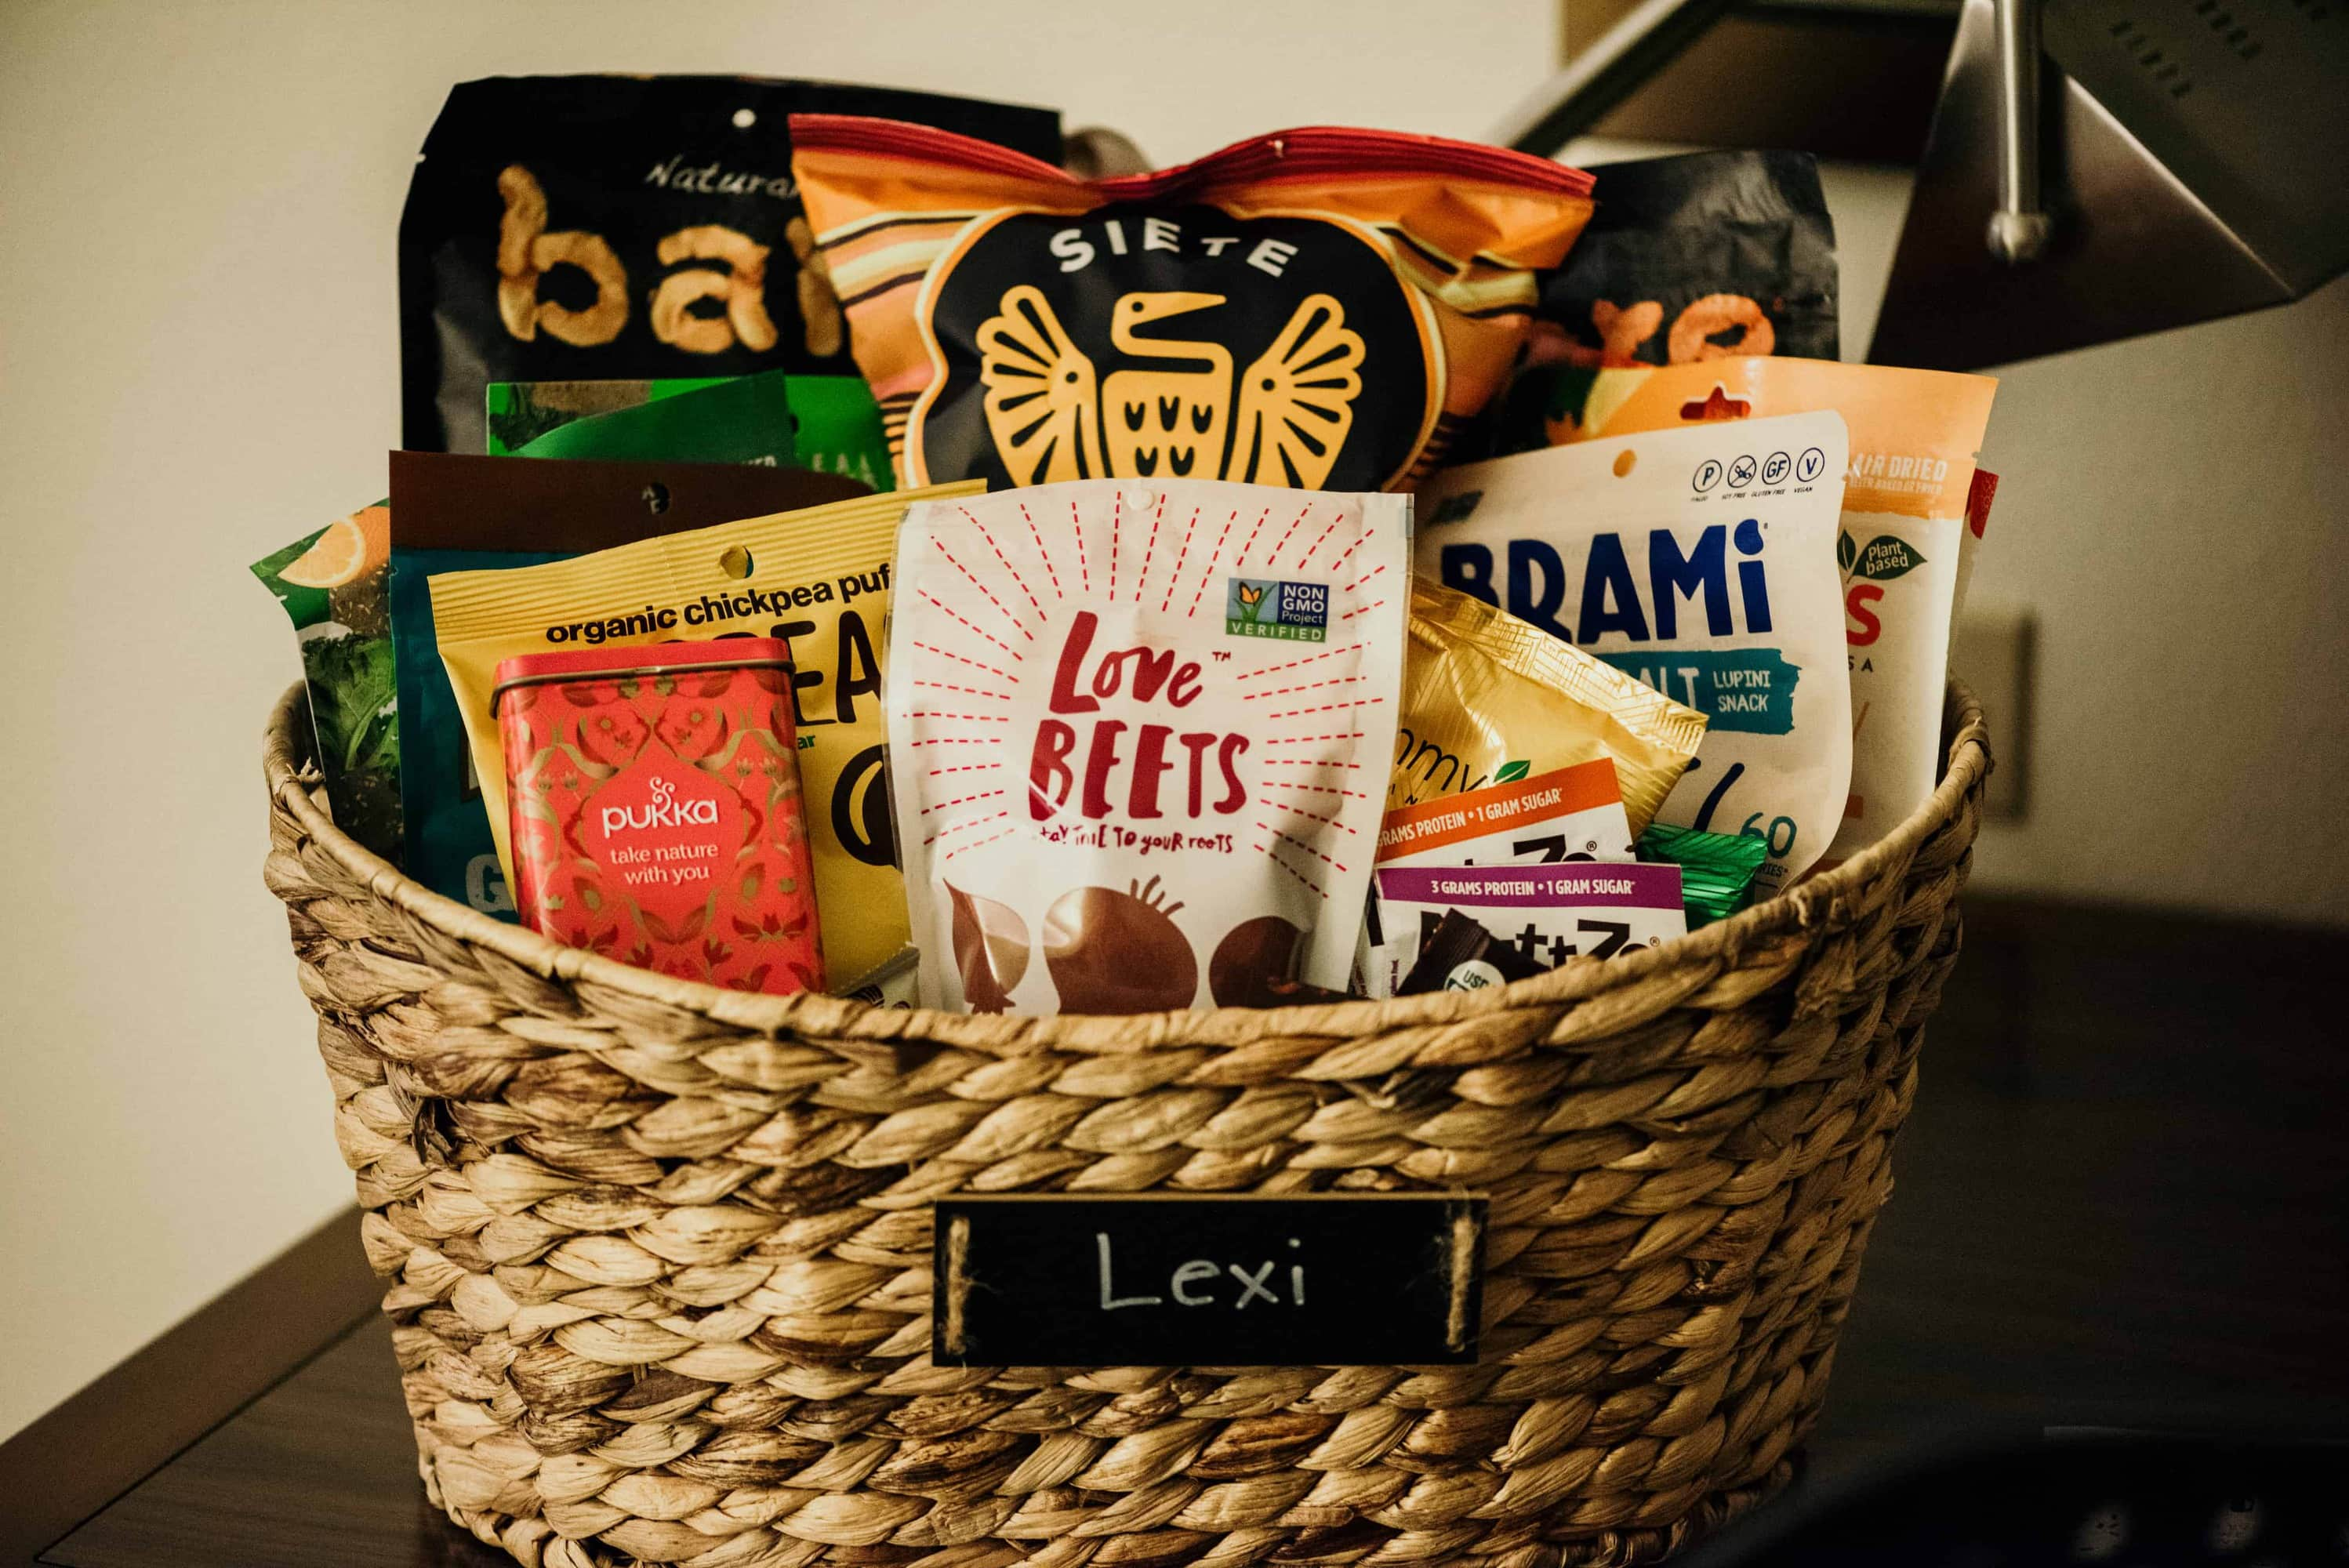 love beets products in a wicker basket with other plant-based products